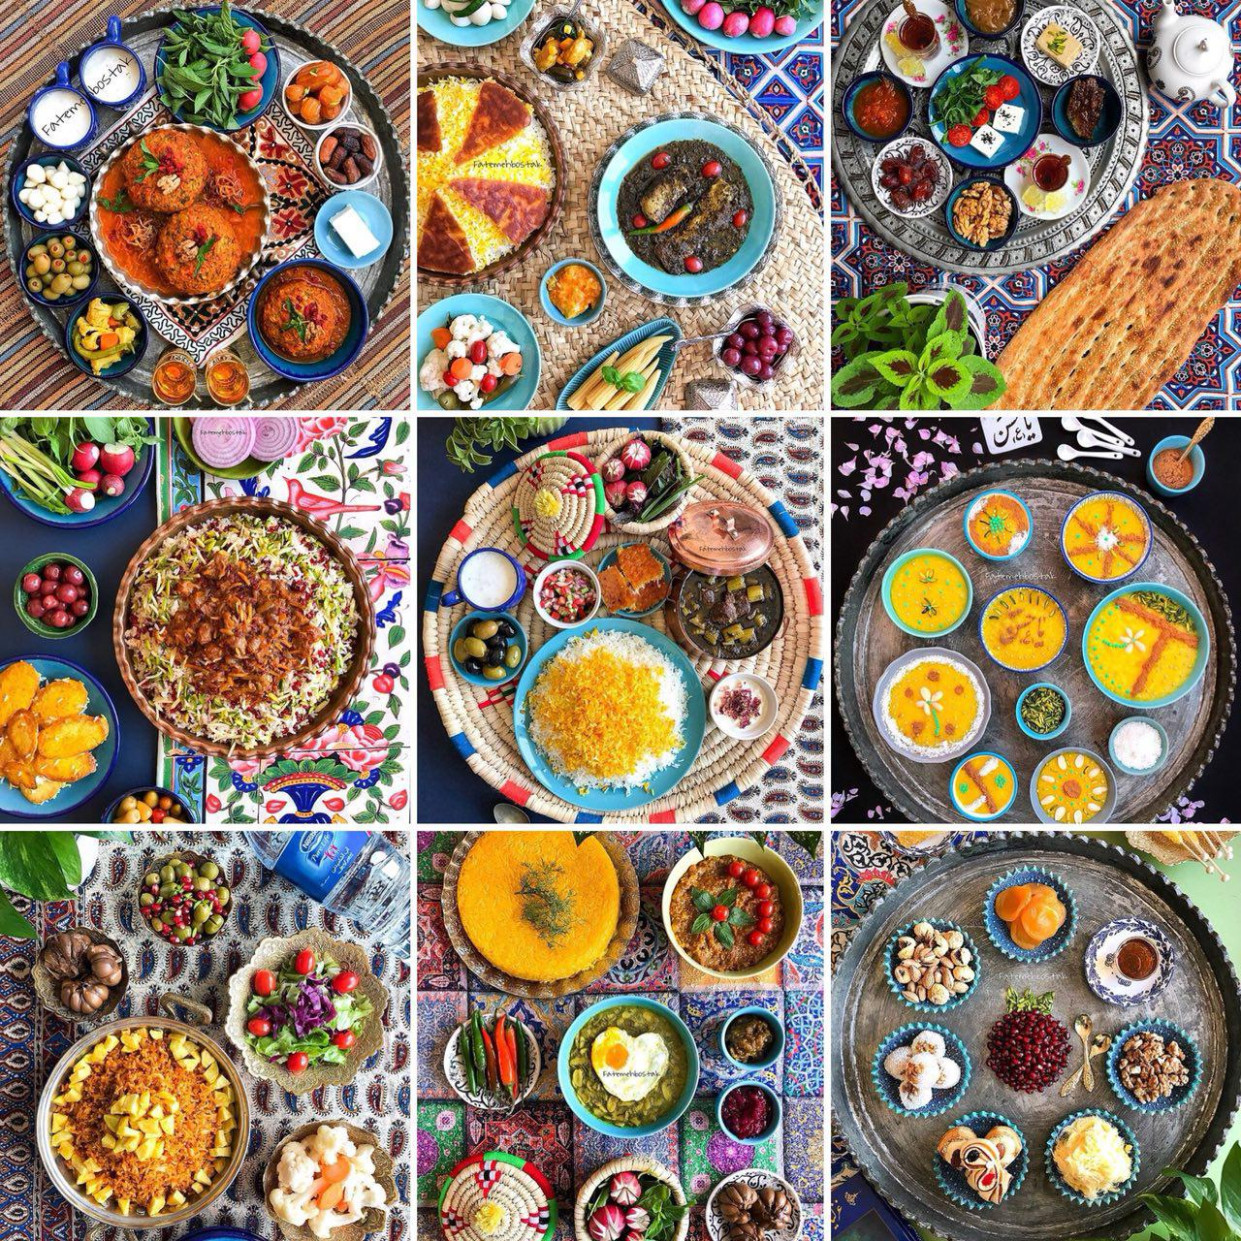 The Top 12 Iranian Food Instagram Accounts That Makes You ..